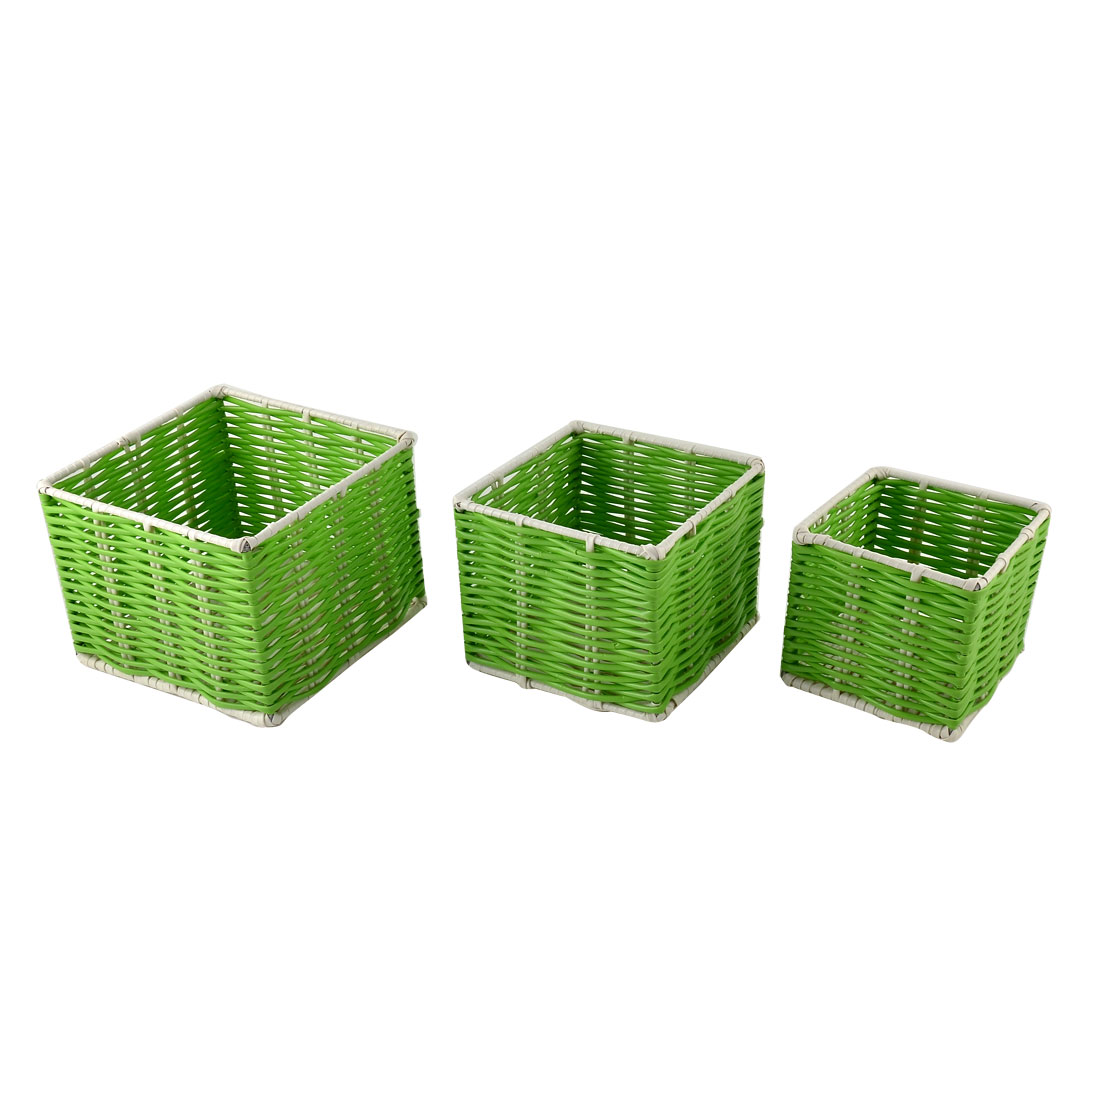 Hosehold Office School Plastic Perforated Stationery Storage Basket Container 3 in 1 Green